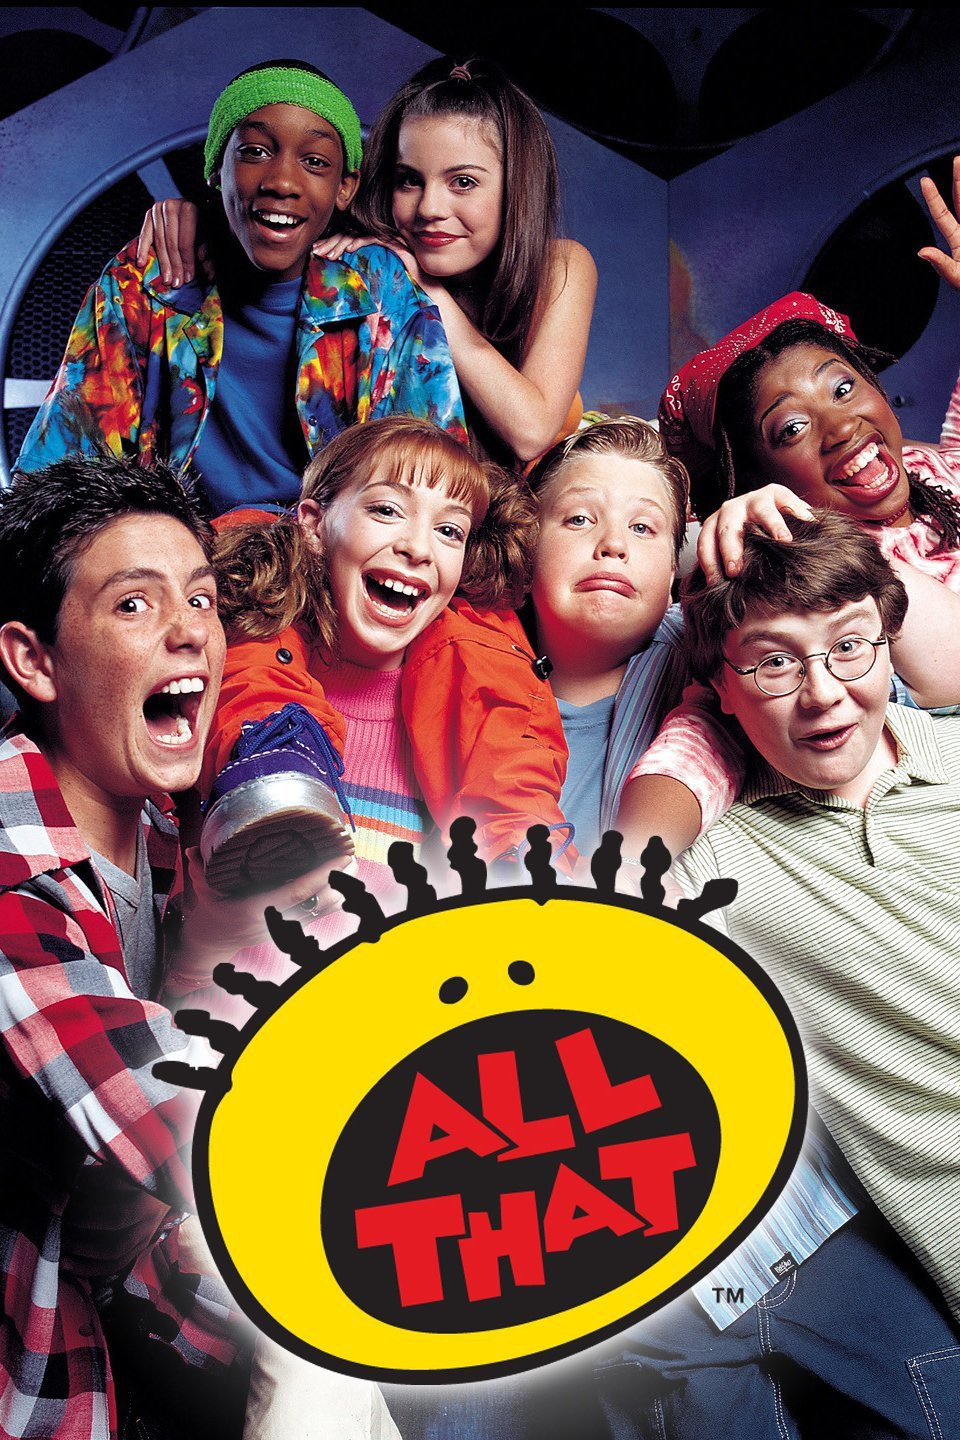 11 MTV Shows From The 90s & 00s That Need A Revival Right Now